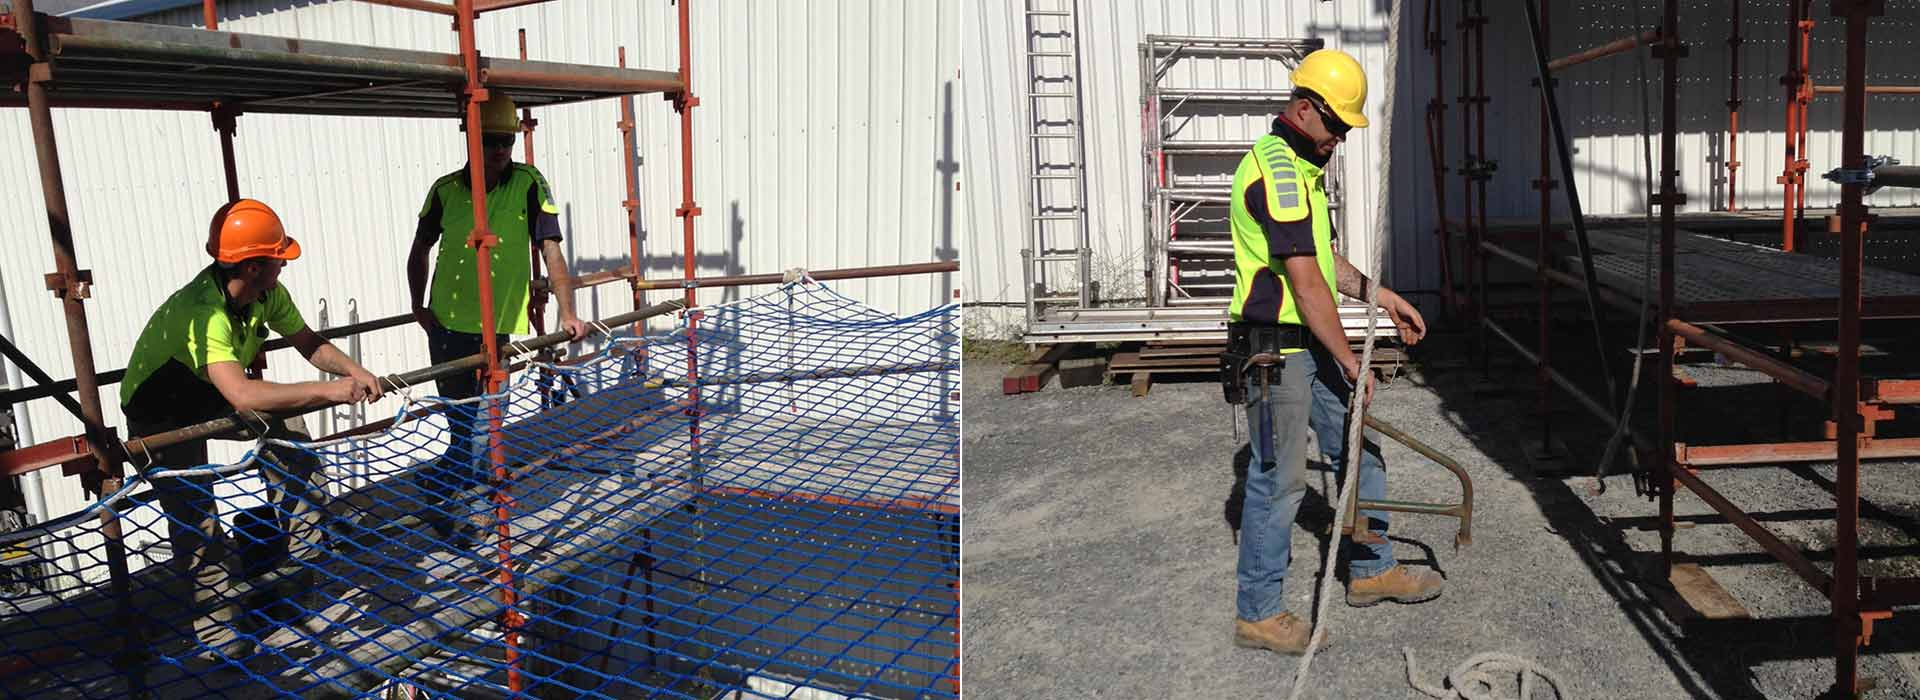 industrial licencing solutions scaffolding workers safety nets